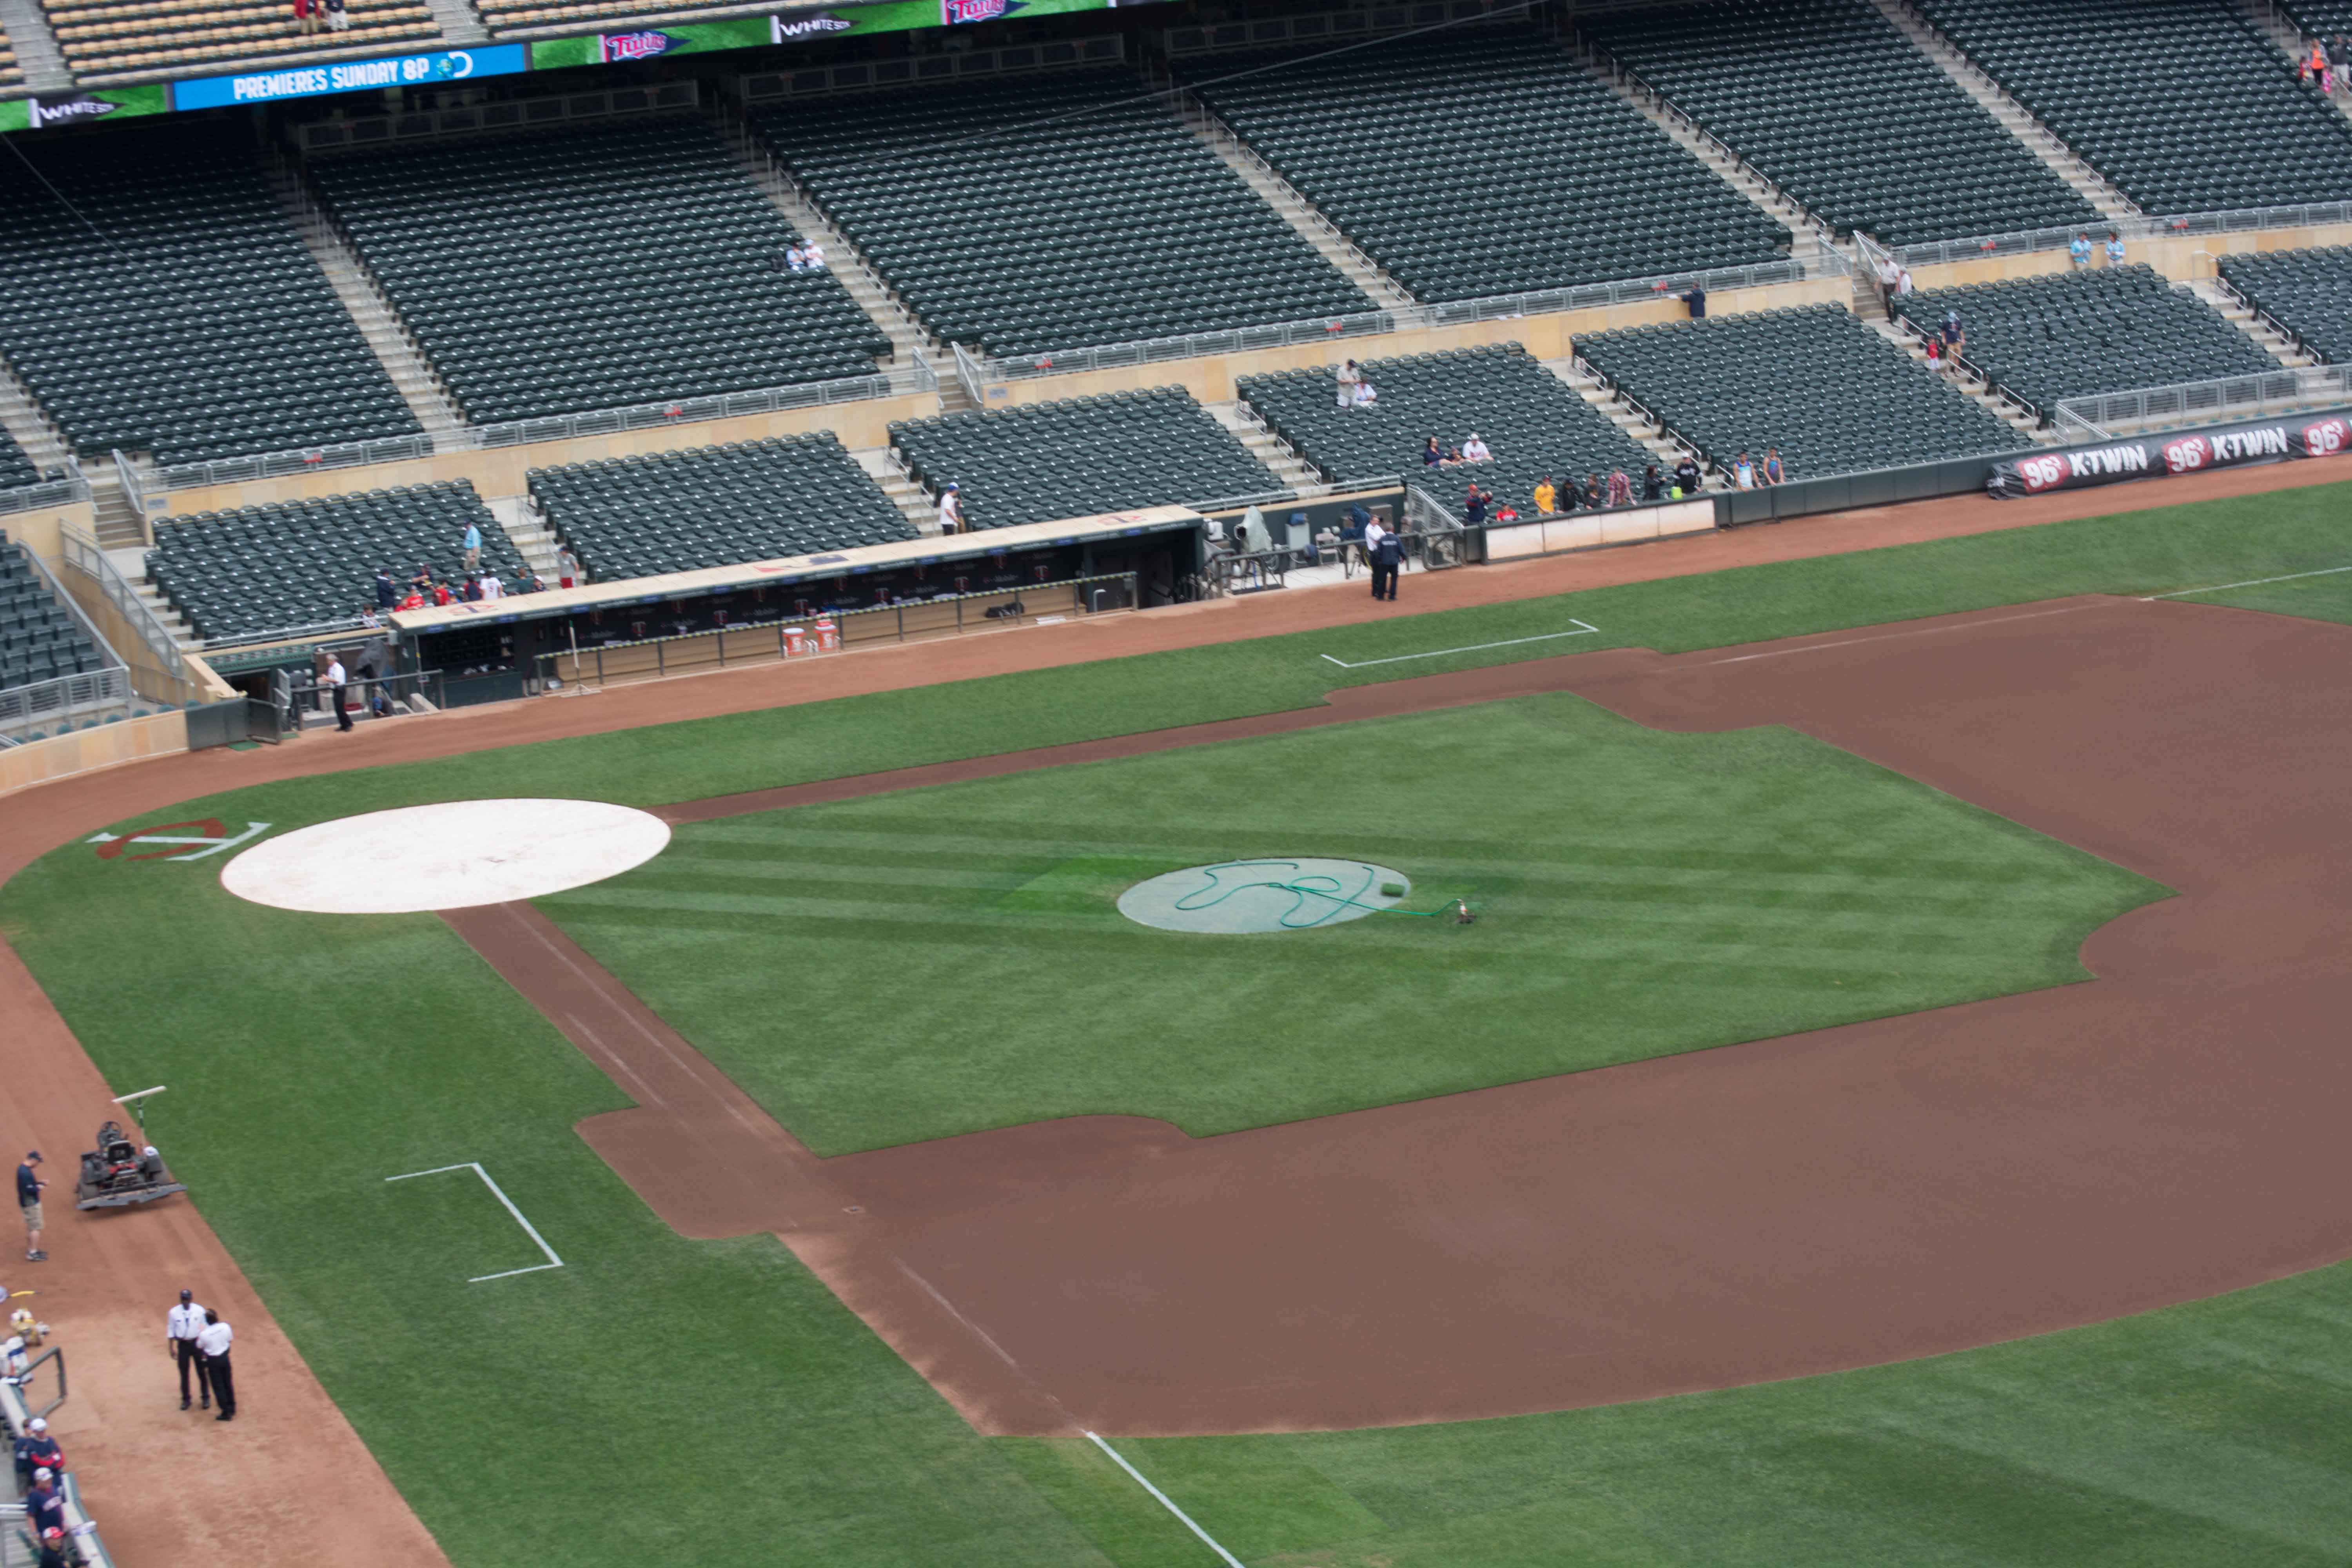 Target Field - Section 301 (Field View)